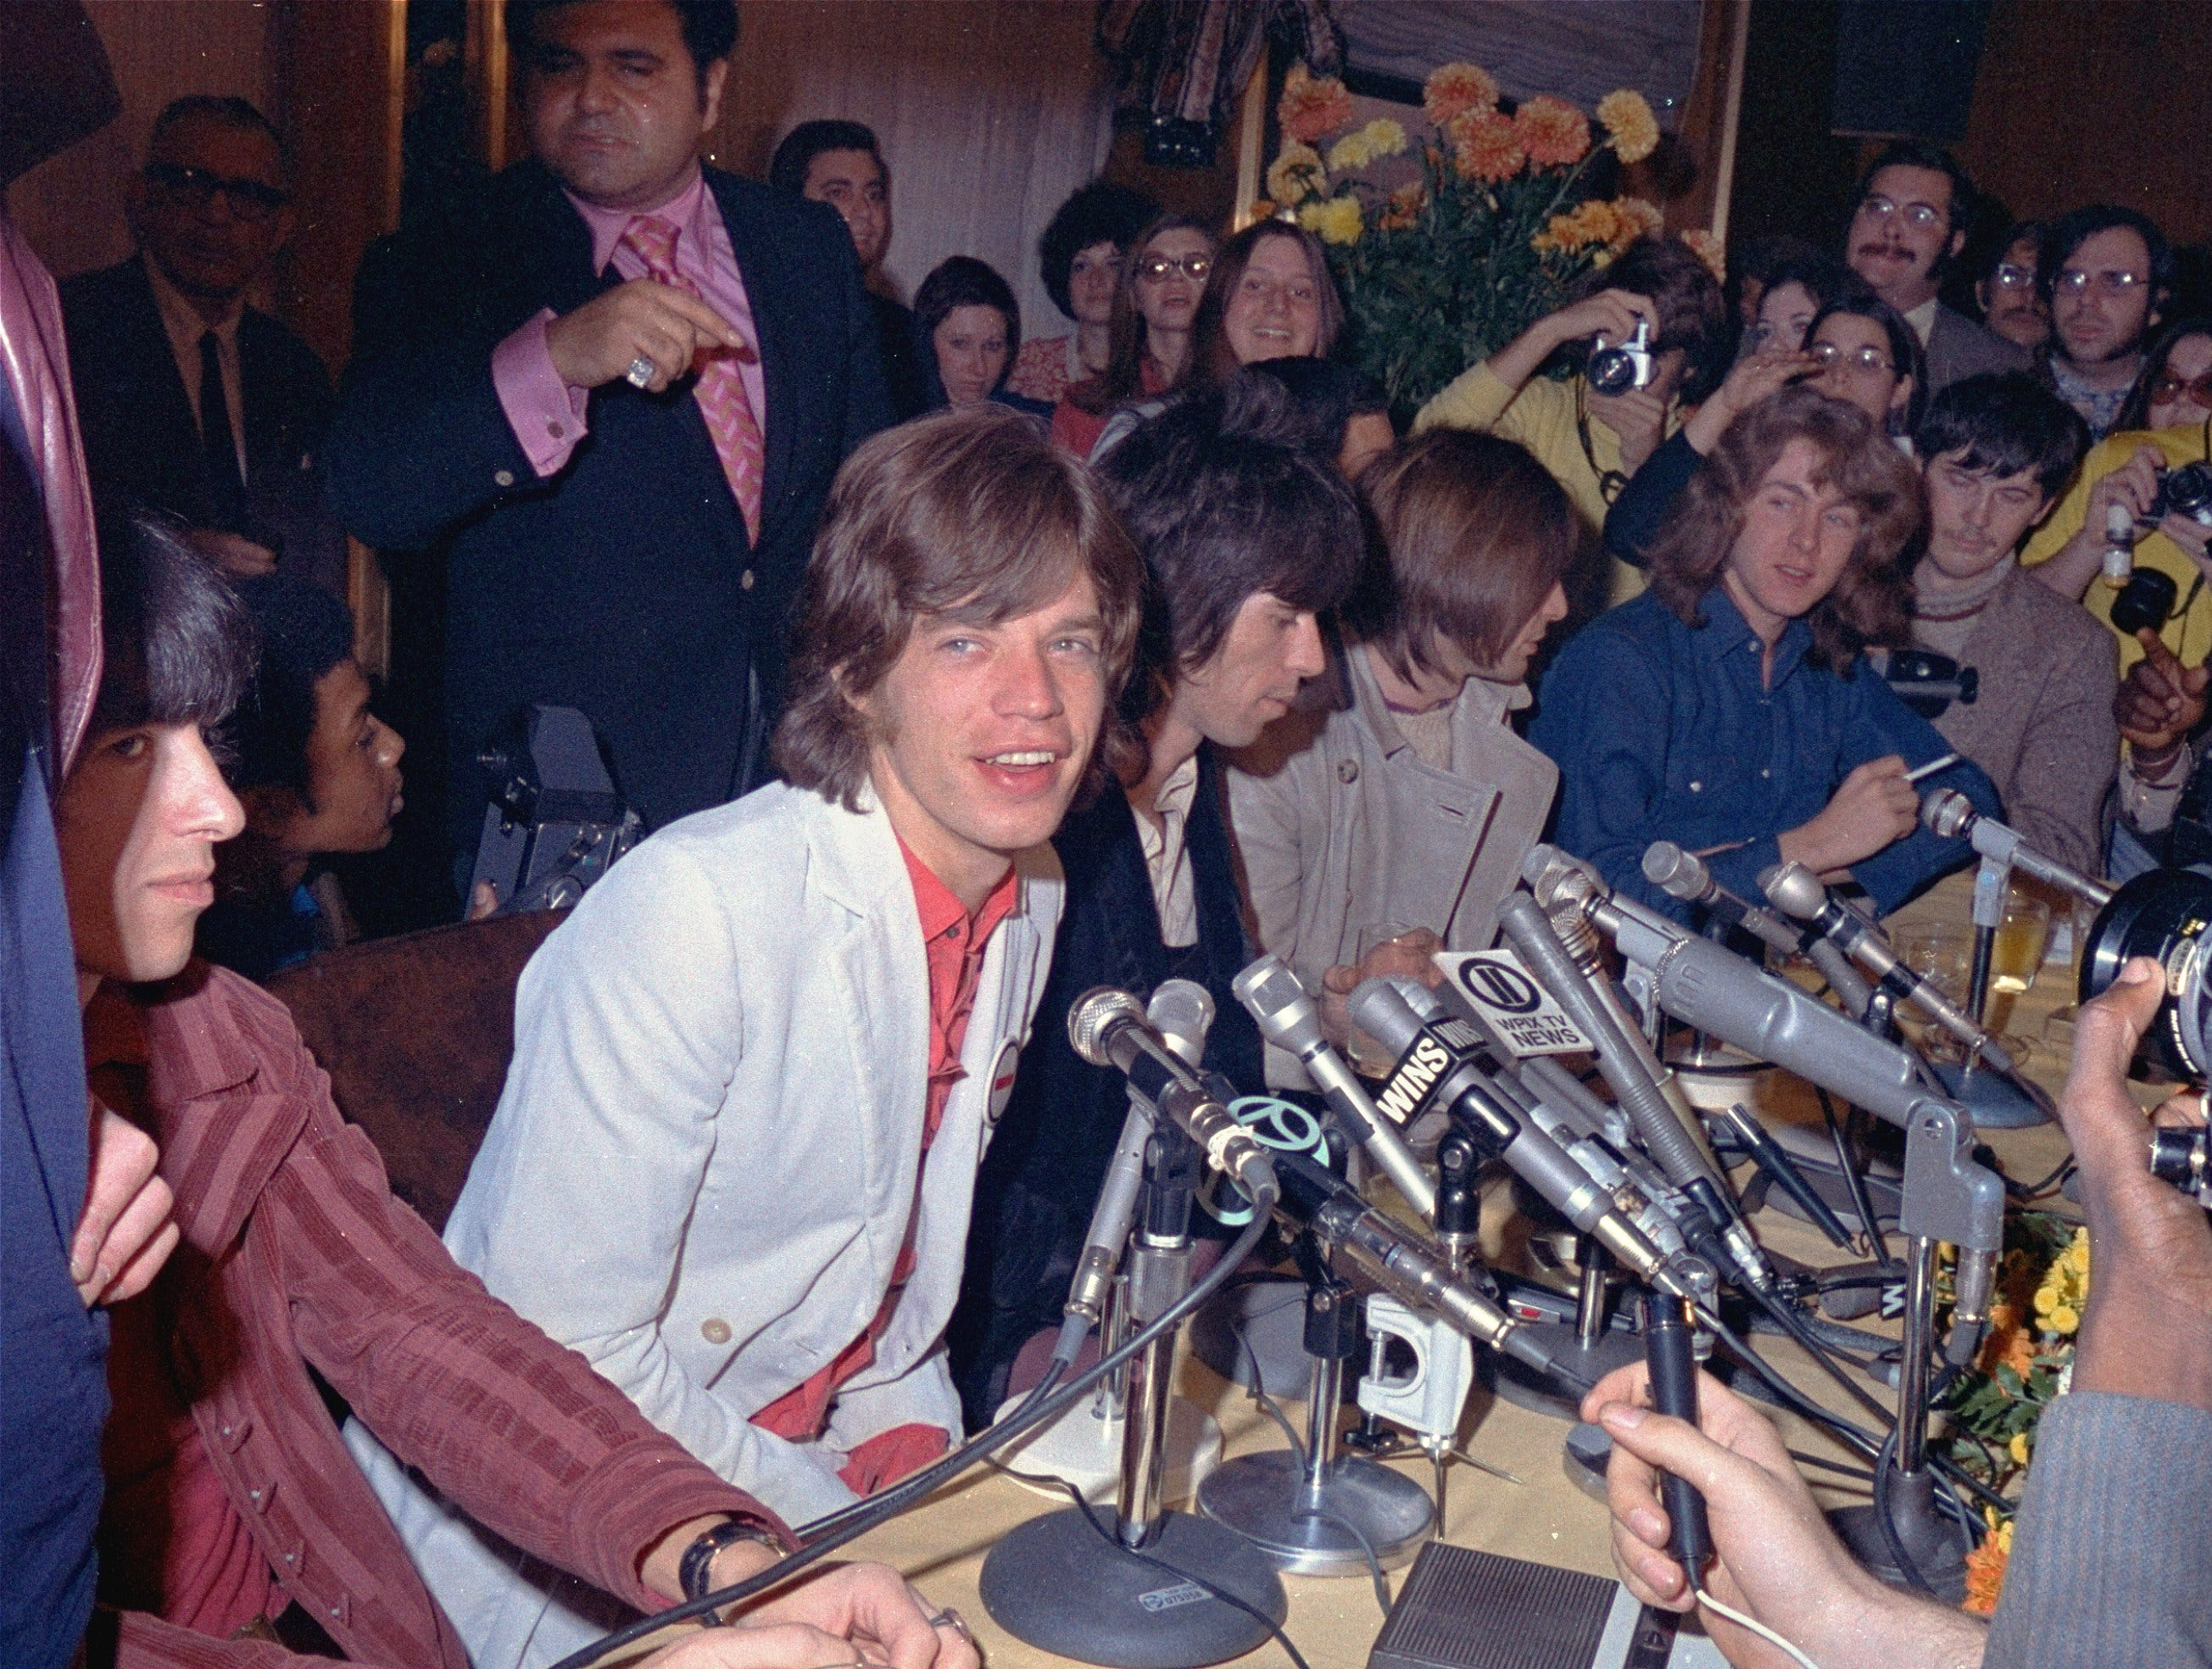 The Rolling Stones hold a news conference prior to their concert at Madison Square Garden, Nov. 26, 1969.  From left: Billy Wyman, bass, Mick Jagger, vocalist, Keith Richards, lead guitar, Charlie Watts, drums, and Mick Taylor, guitar. (AP Photo)